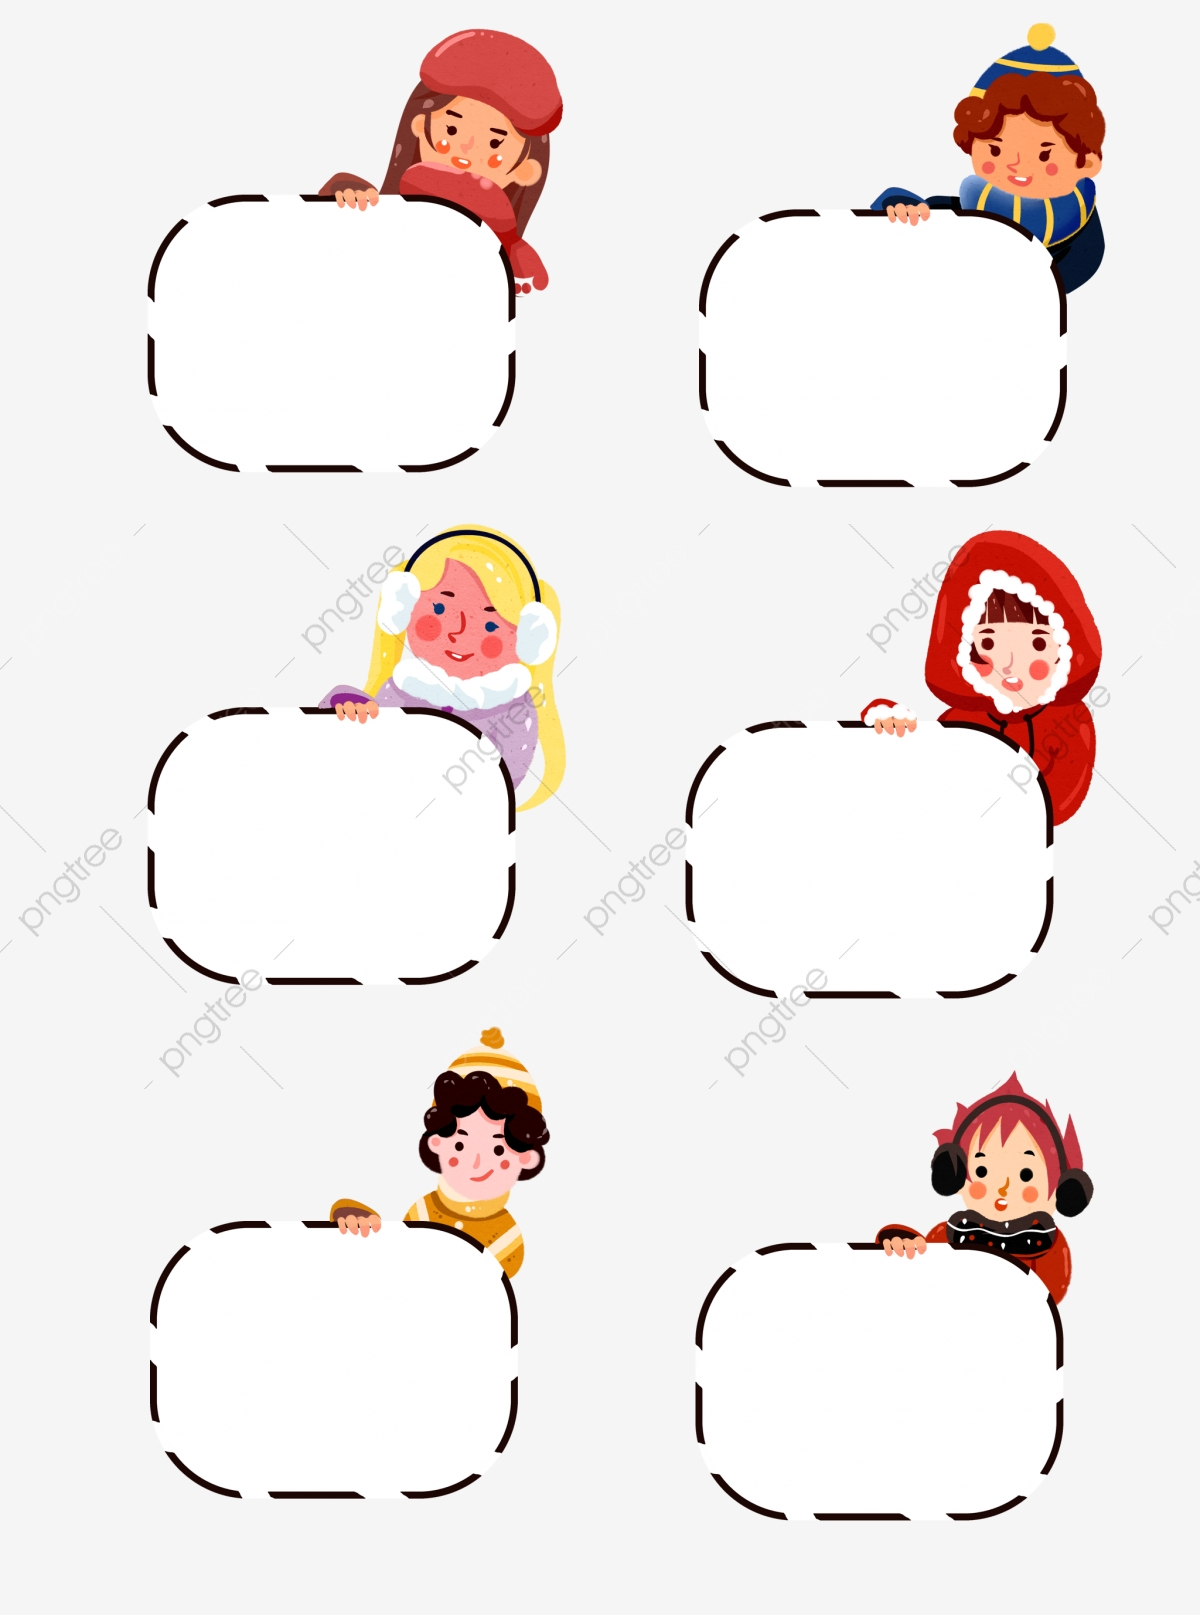 Winter clipart end, Winter end Transparent FREE for download on  WebStockReview 2020